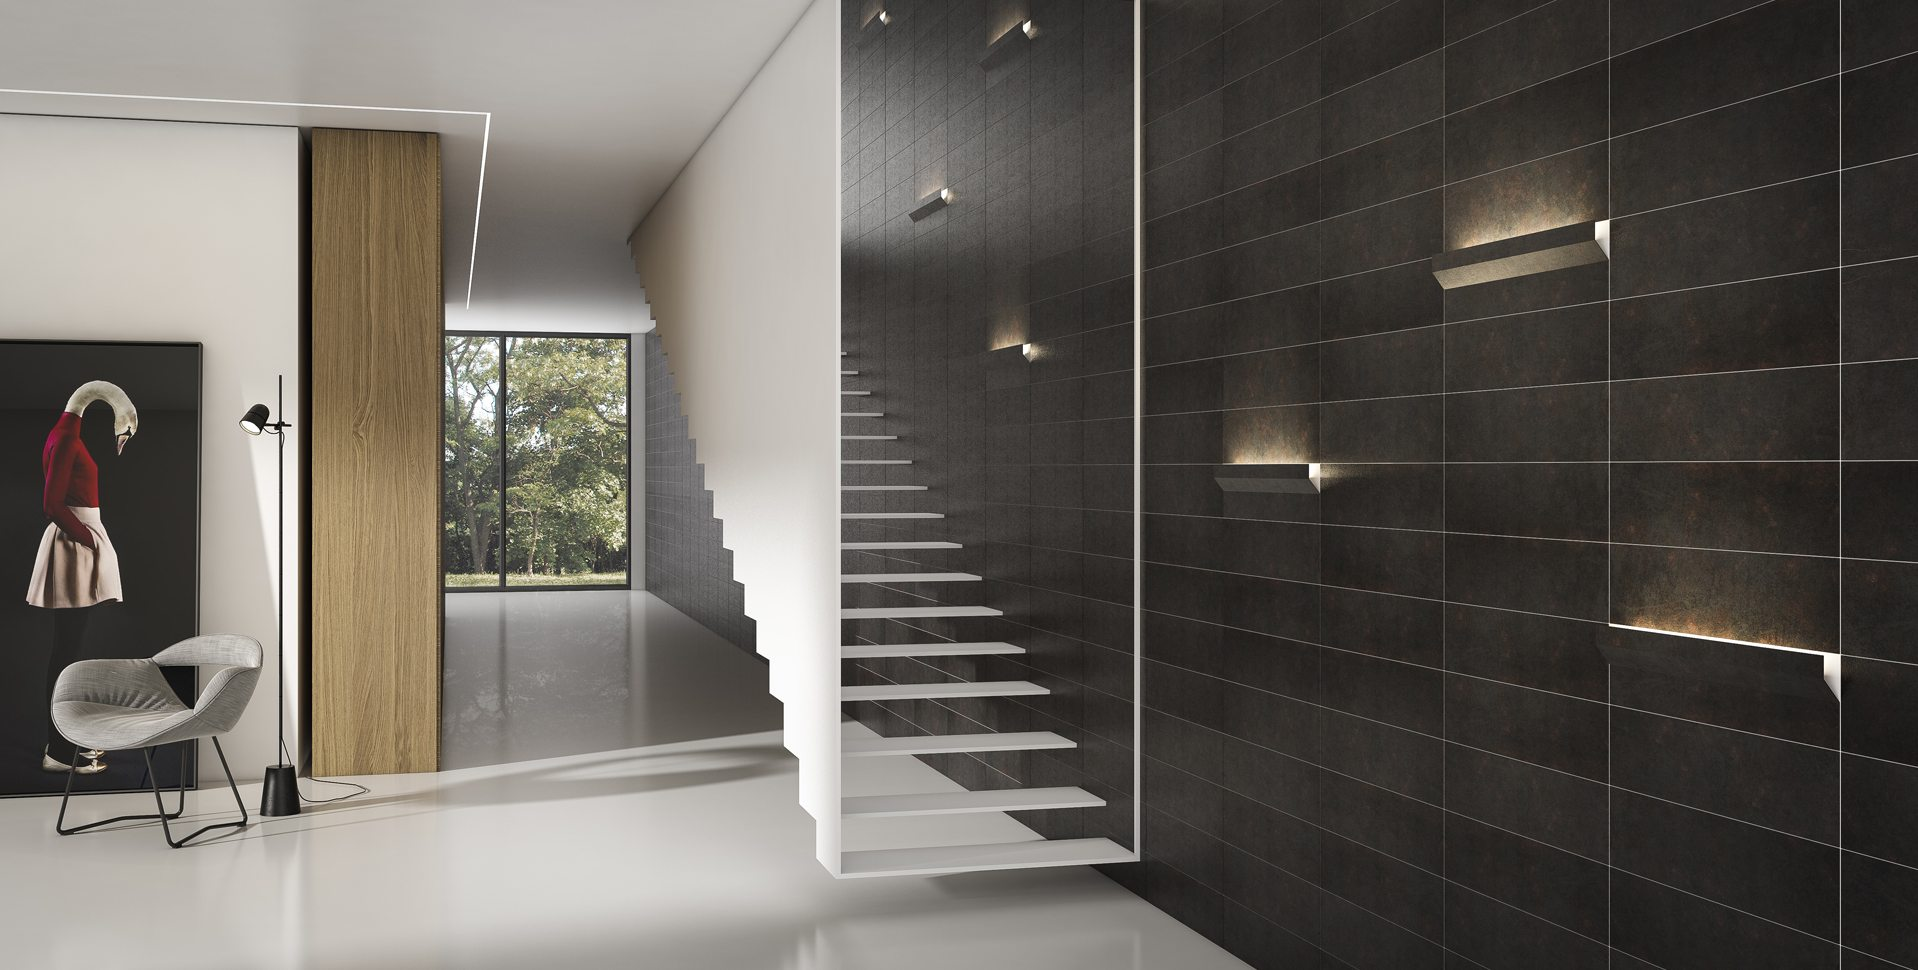 Product Visualization: Wall Covering and Lighting Fixtures, Hall Interior